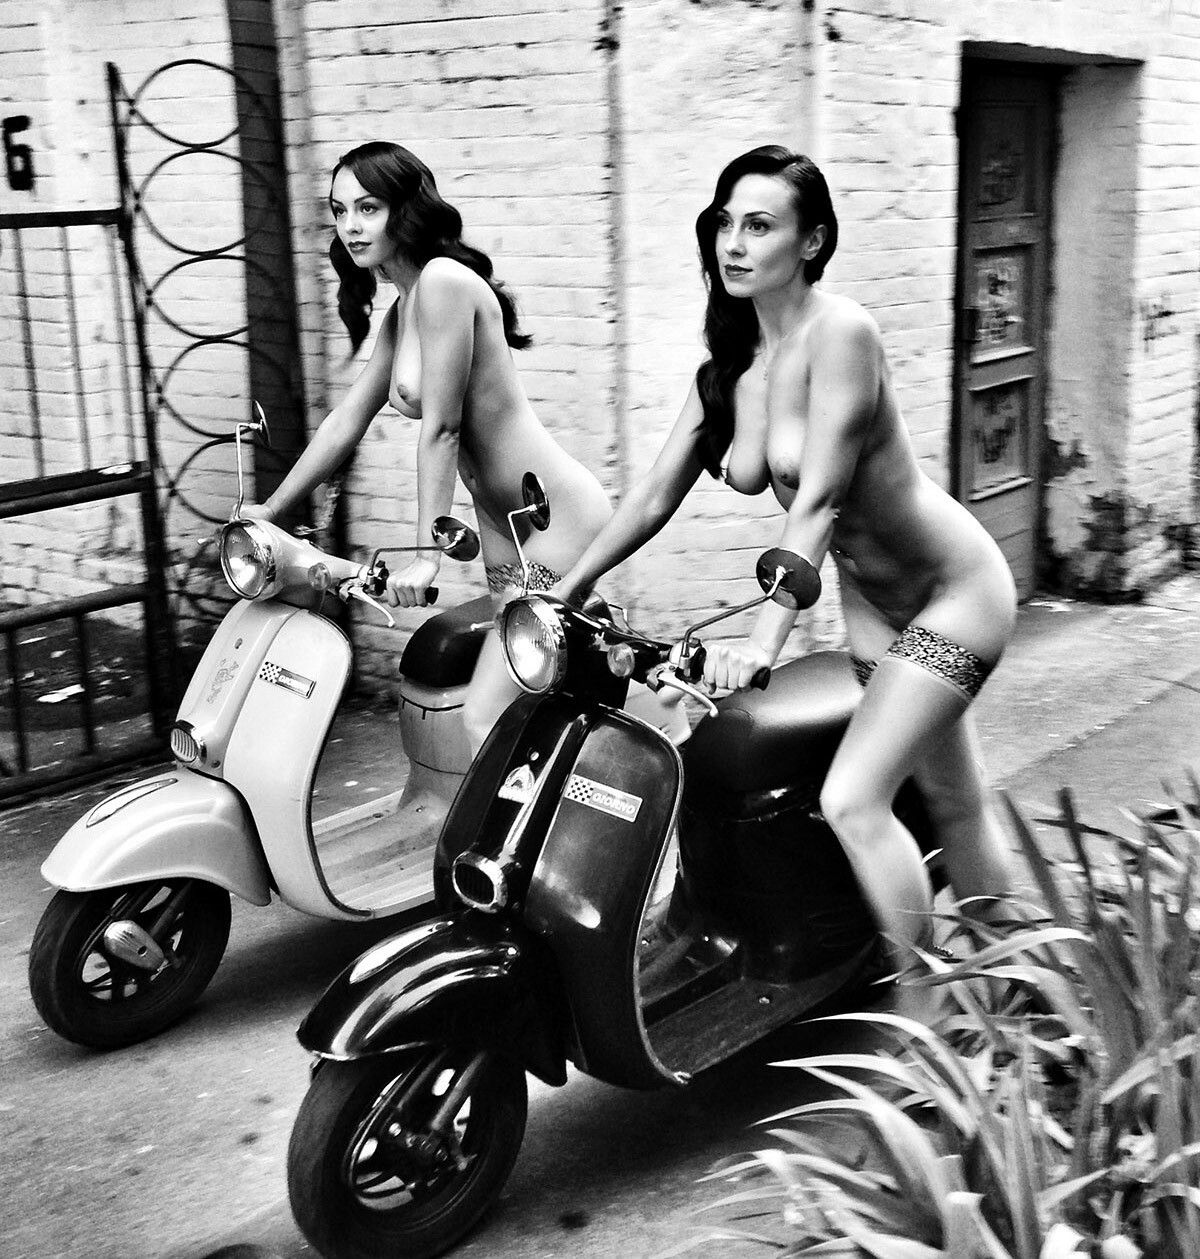 Sorry, that nude women on scooters consider